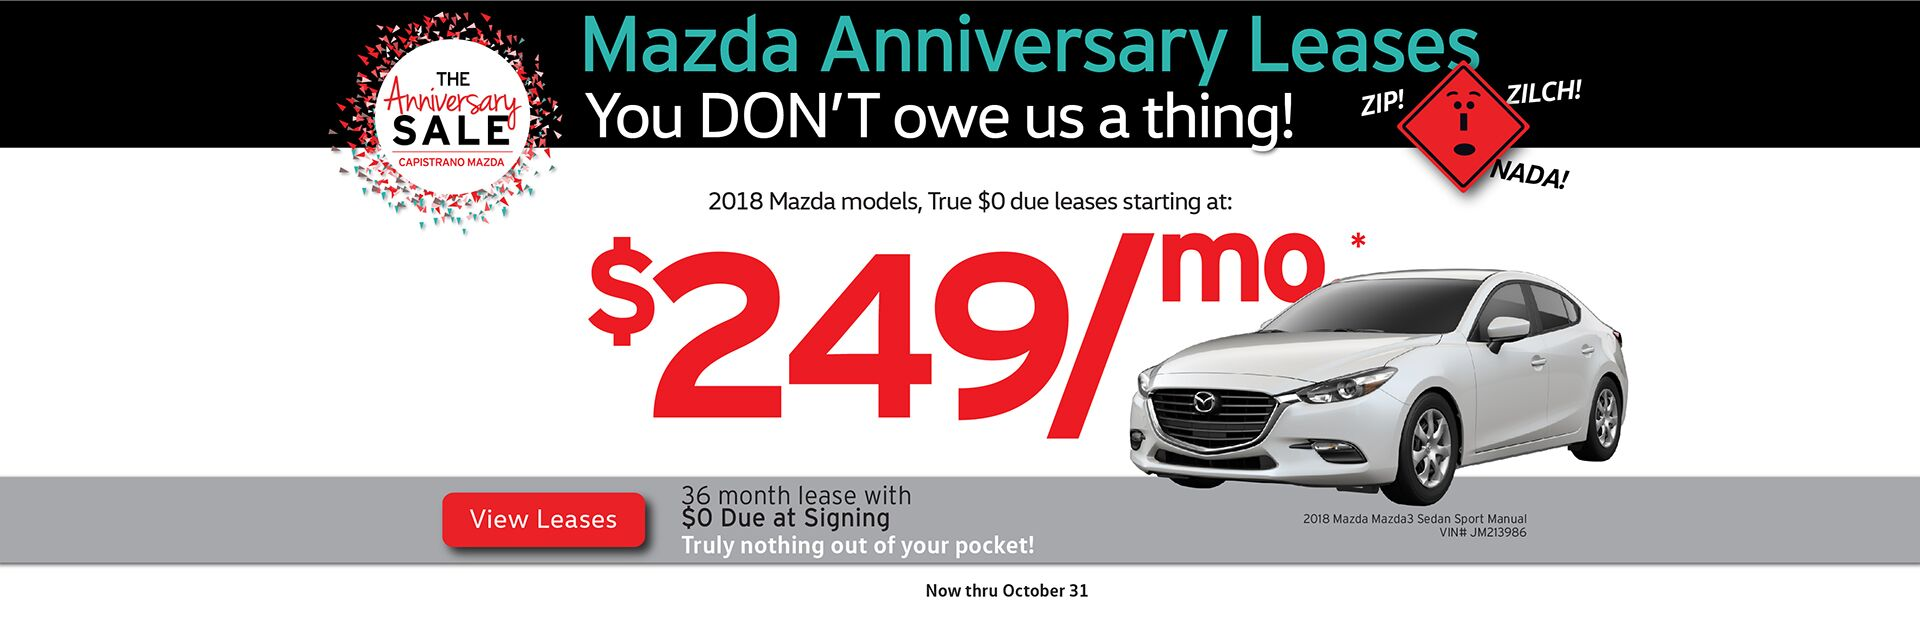 Anniversary Sale Leases with True $0 Due at Signing Lease Option